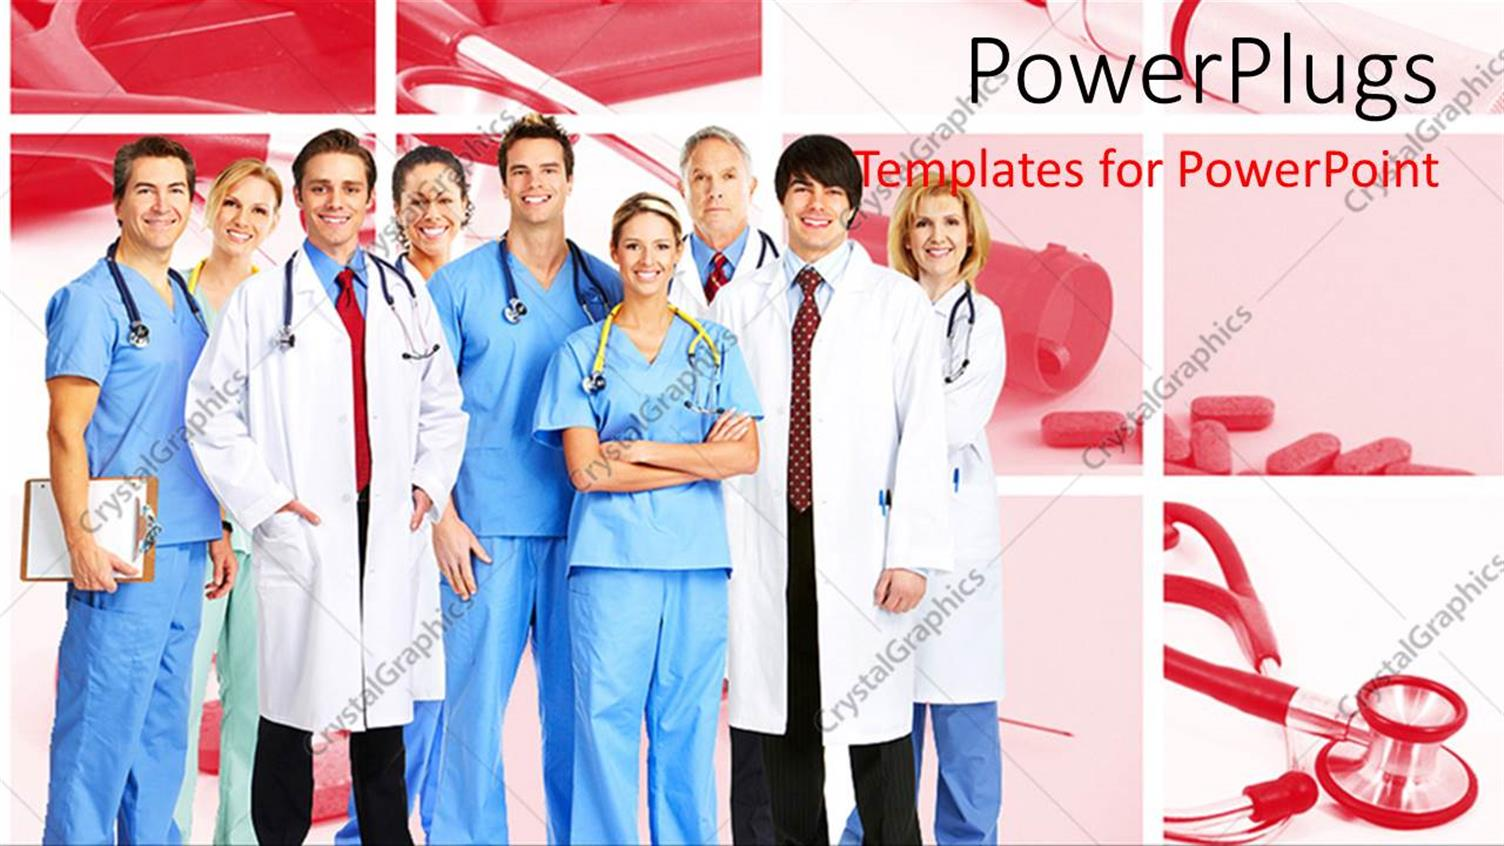 PowerPoint Template Displaying Team of Doctors and Nurses Wearing Stethoscopes and Smiling at the Camera